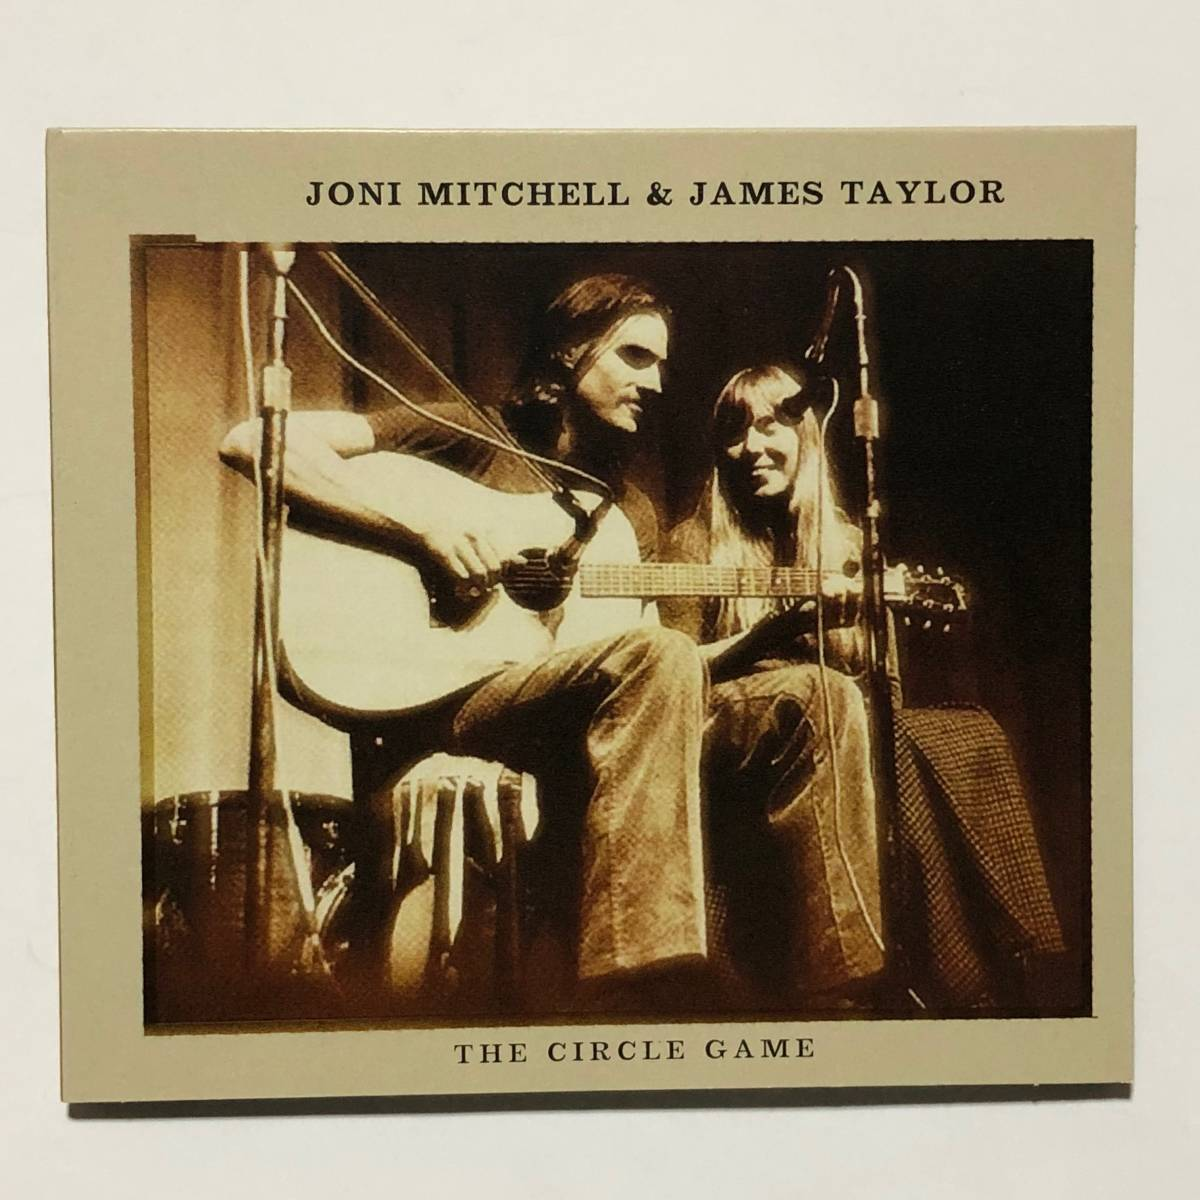 ◆◇◆ Joni Mitchell & James Taylor ジョニ・ミッチェル & ジェイムス・テイラー / The Circle Game CD, Import